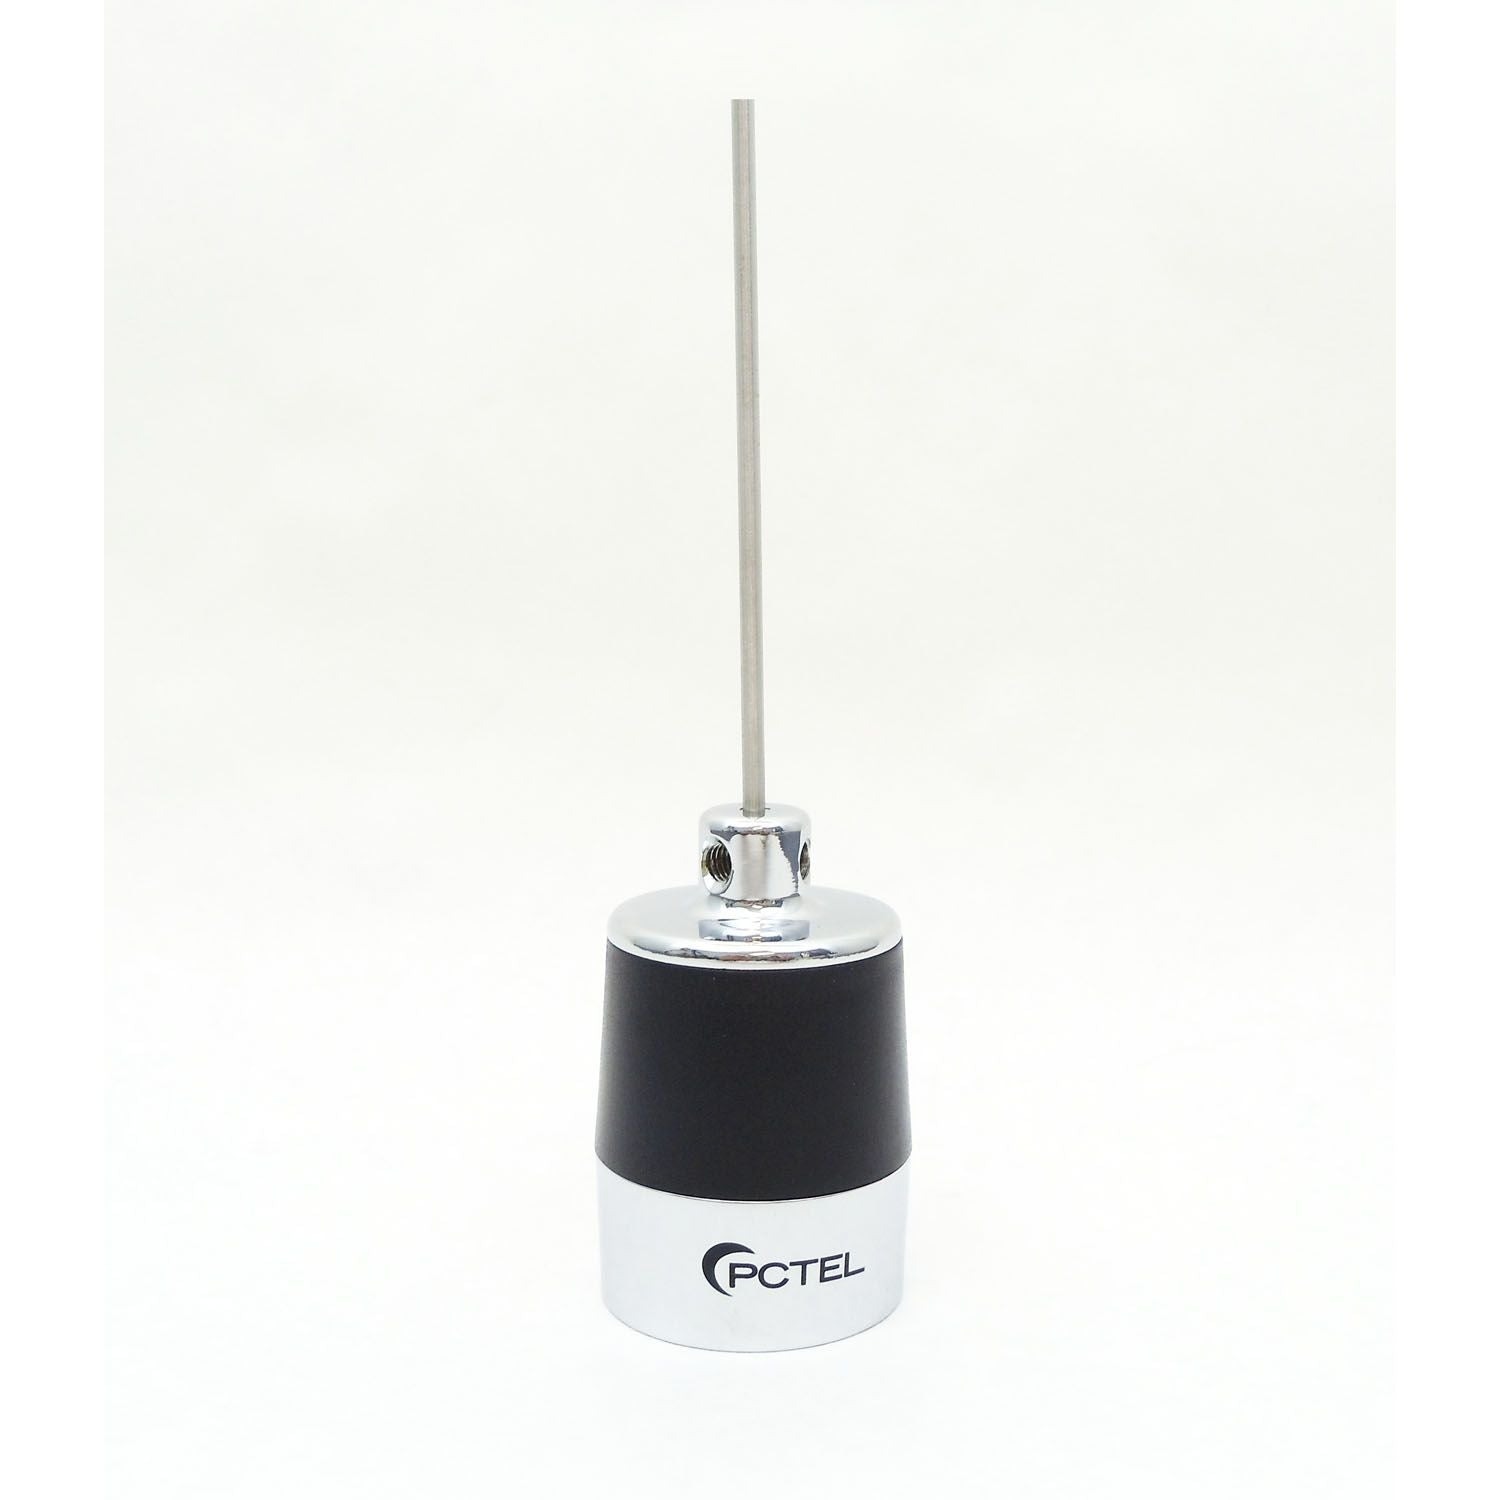 MHB5800S: PCTEL / Maxrad 5/8 Wave Heavy Duty Antenna with Spring - VHF 144-174 MHz - 3 dB